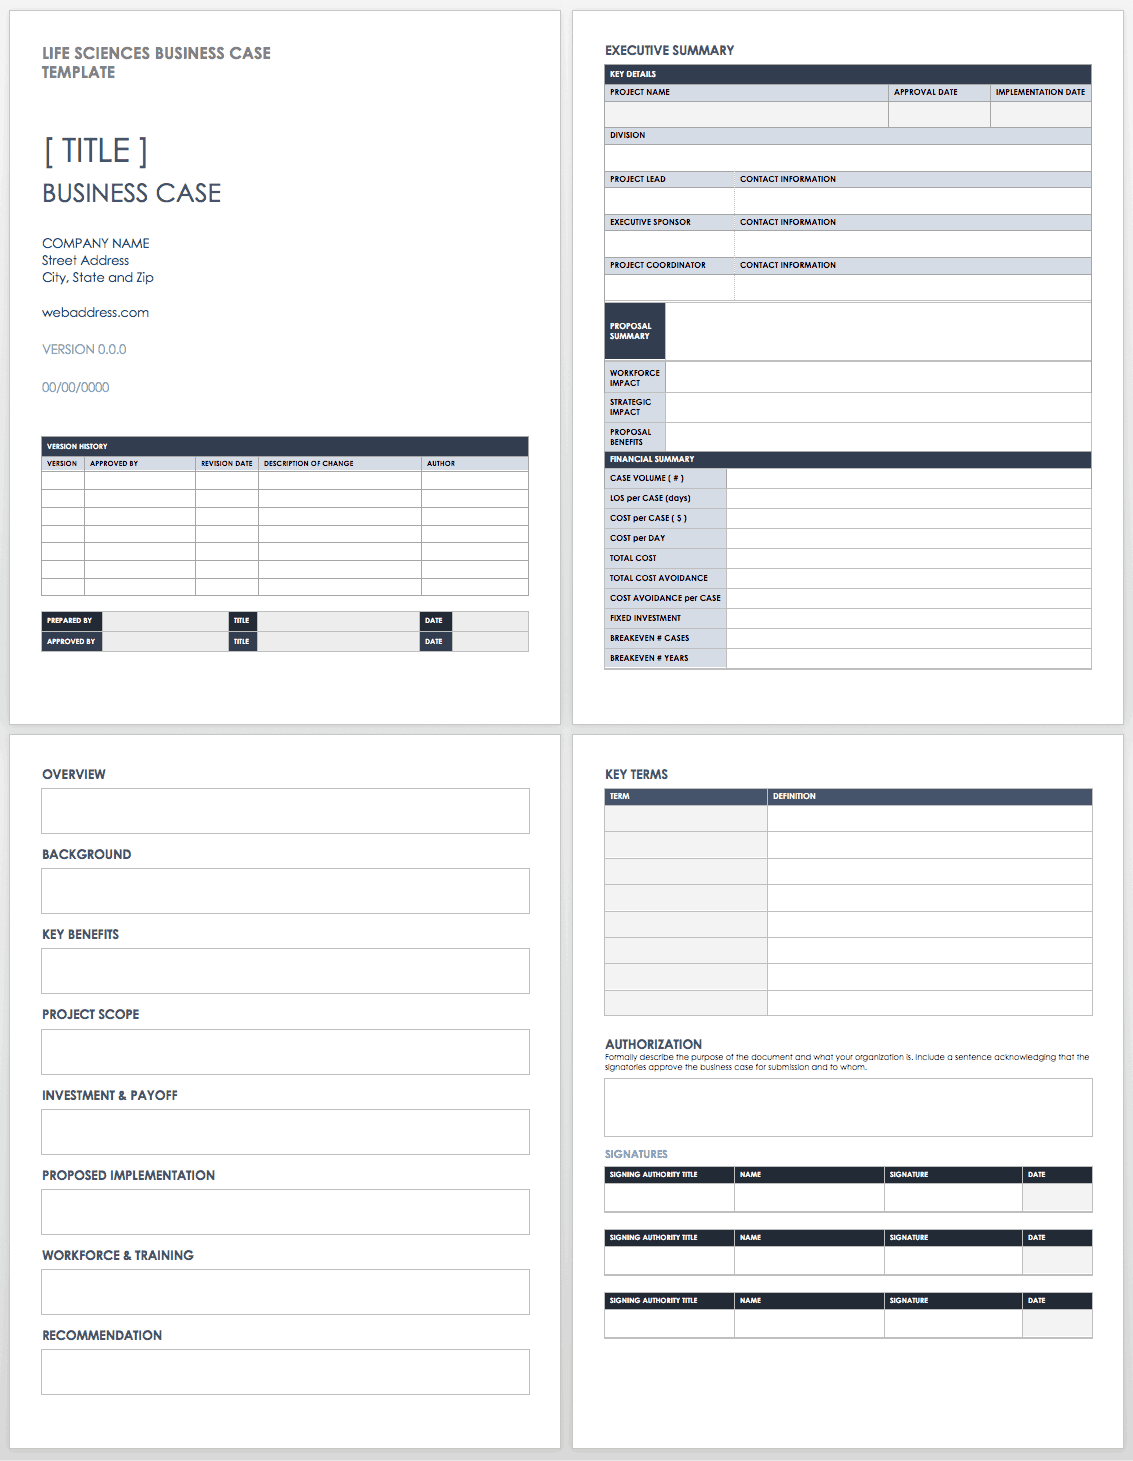 Free business case templates smartsheet life sciences business case cheaphphosting Images